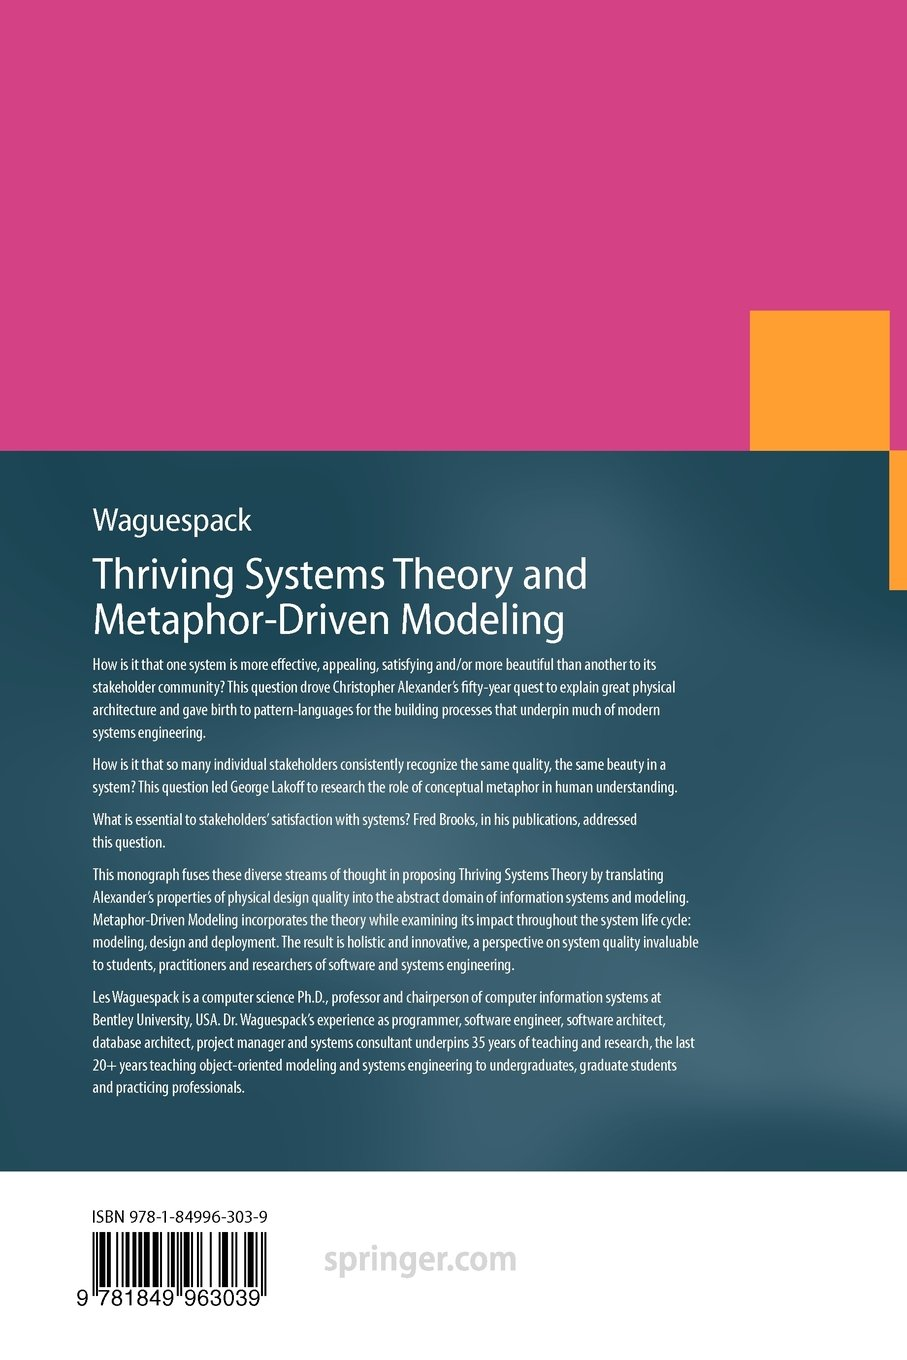 Thriving Systems Theory and Metaphor-Driven Modeling